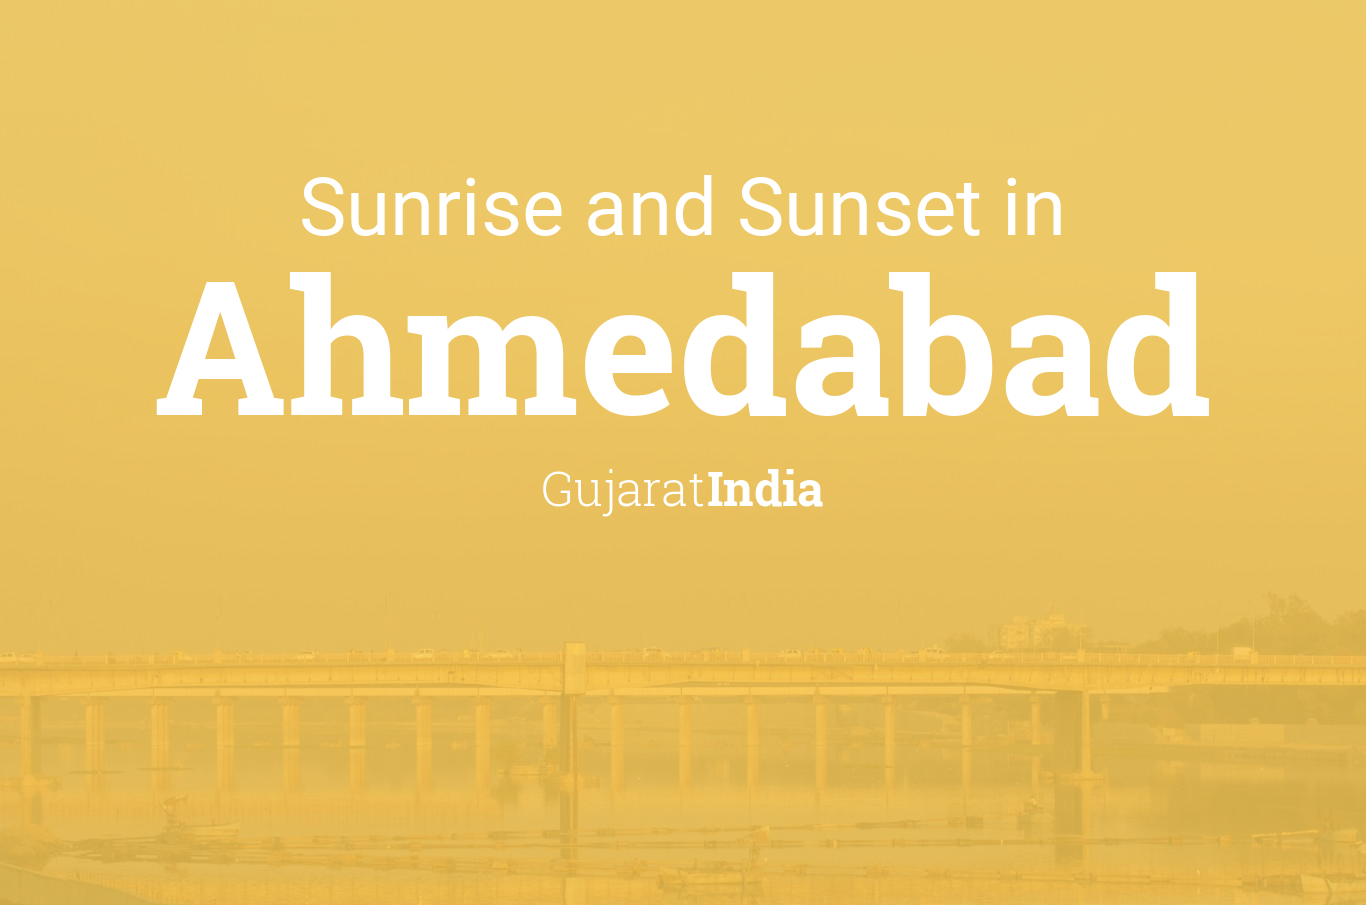 Sunrise and sunset times in Ahmedabad